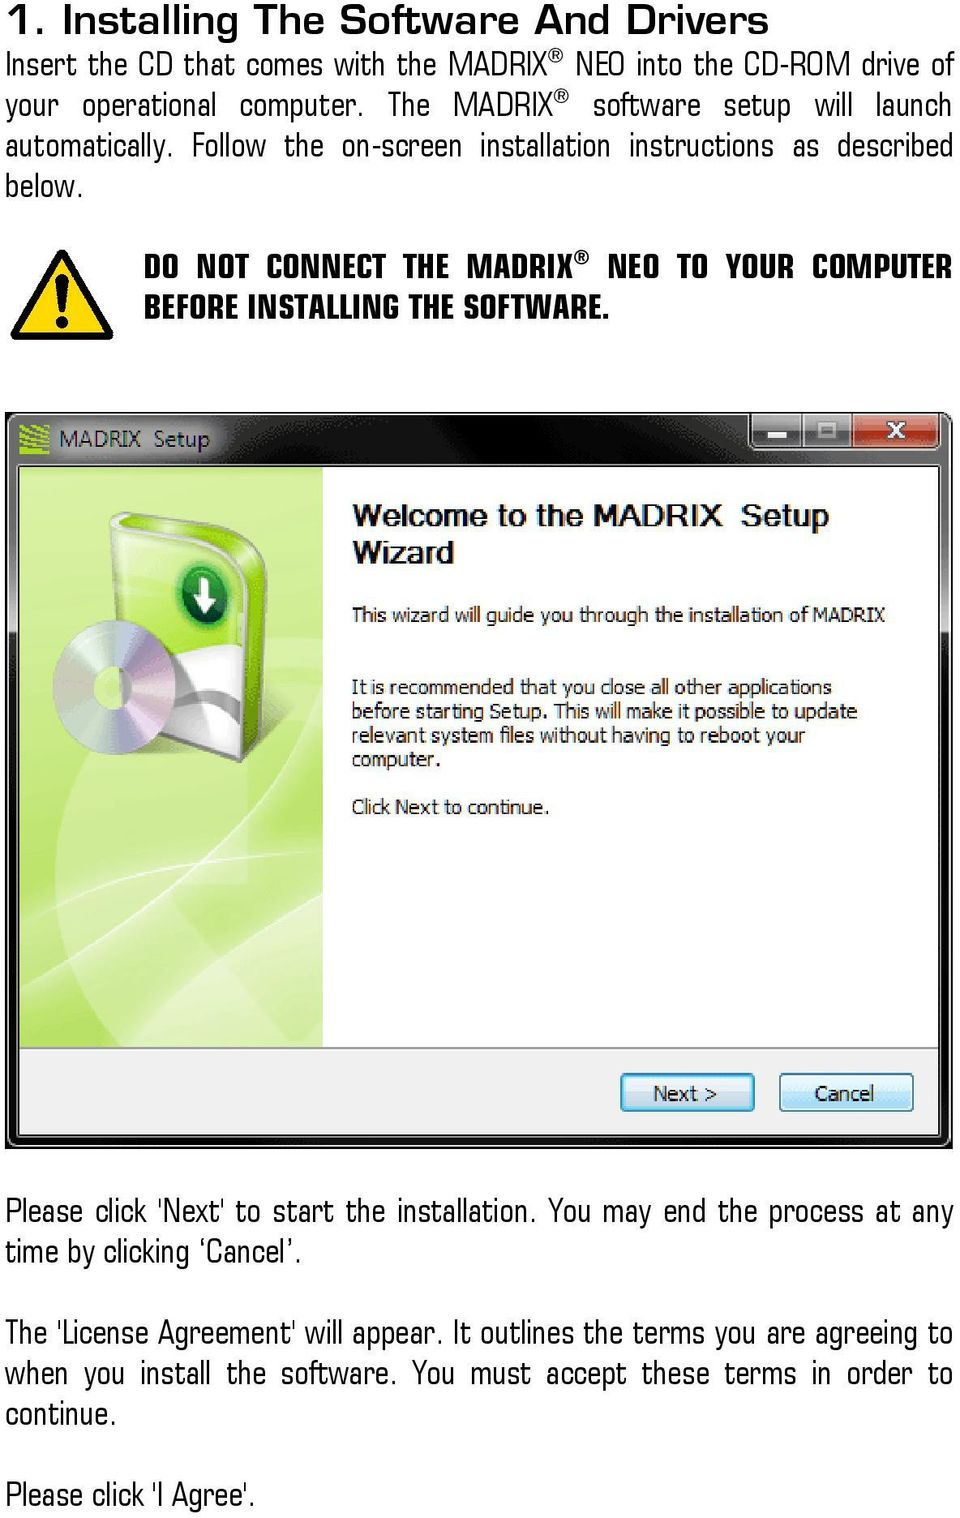 DO NOT CONNECT THE MADRIX NEO TO YOUR COMPUTER BEFORE INSTALLING THE SOFTWARE. Please click 'Next' to start the installation.